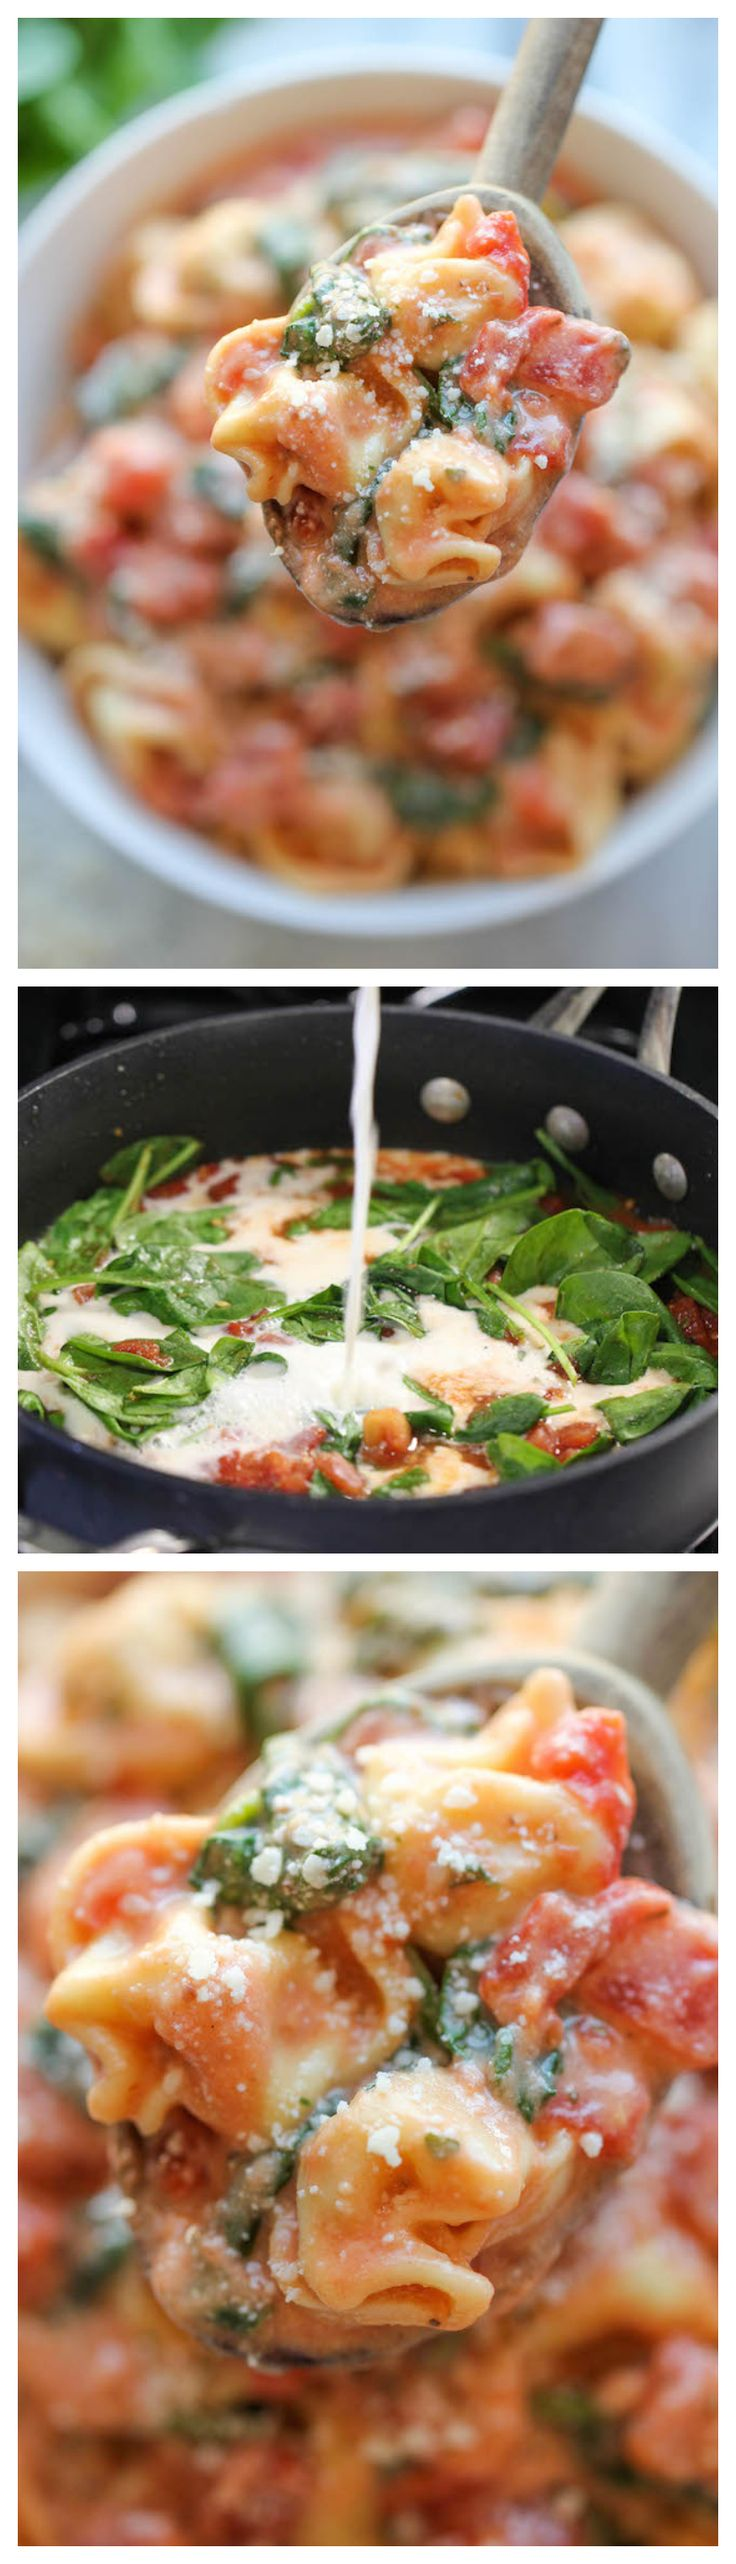 Spinach Tomato Tortellini - The most unbelievably creamy and tasty tortellini you will make in 15 minutes! #Dinnerin15